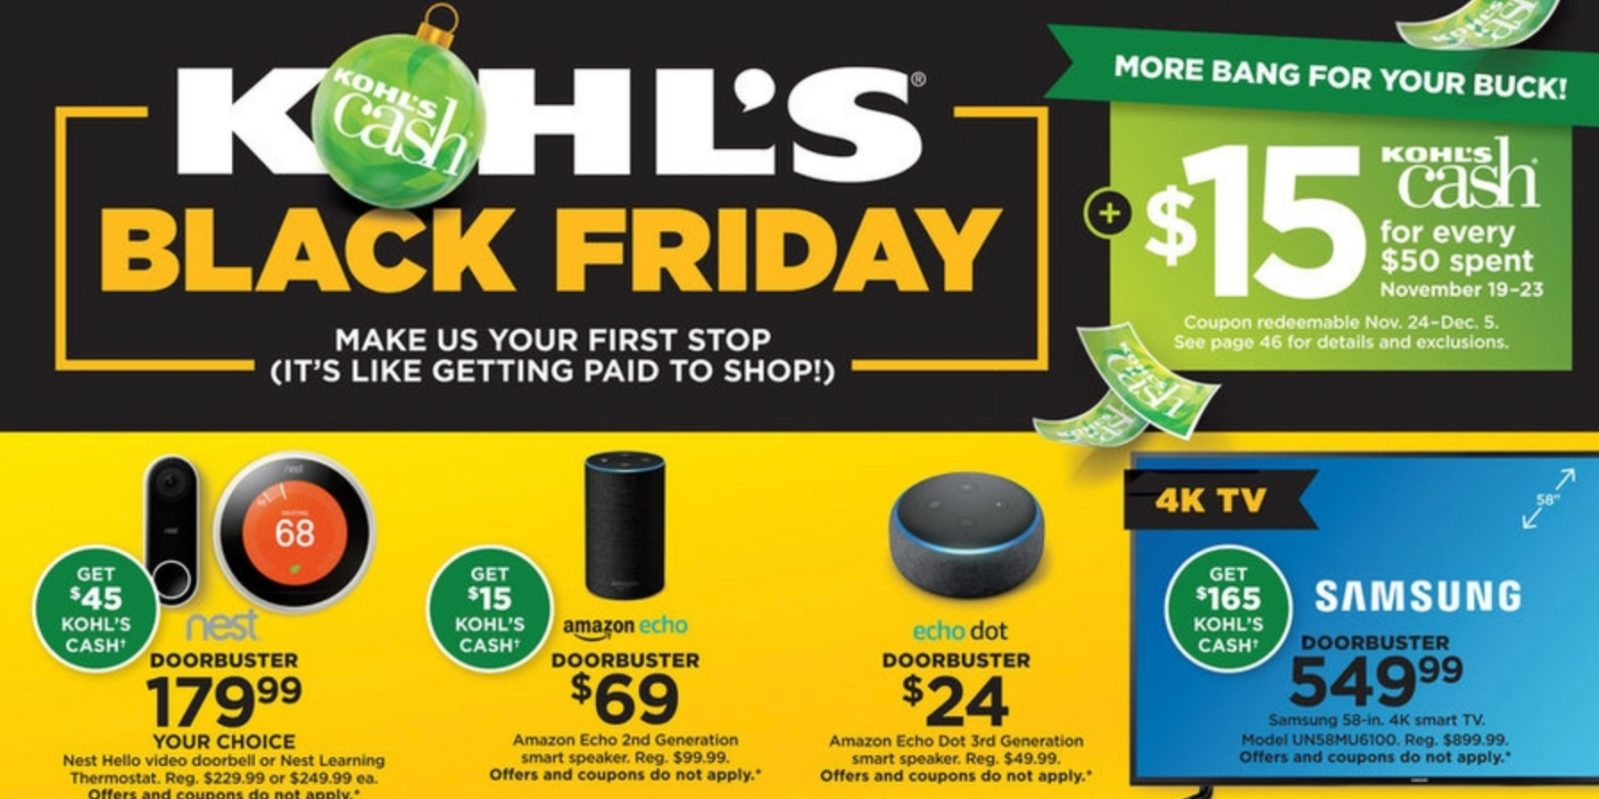 b8939c9c47f Kohl's Black Friday Ad 2018 - doorbusters, Kohl's cash, more - 9to5Toys